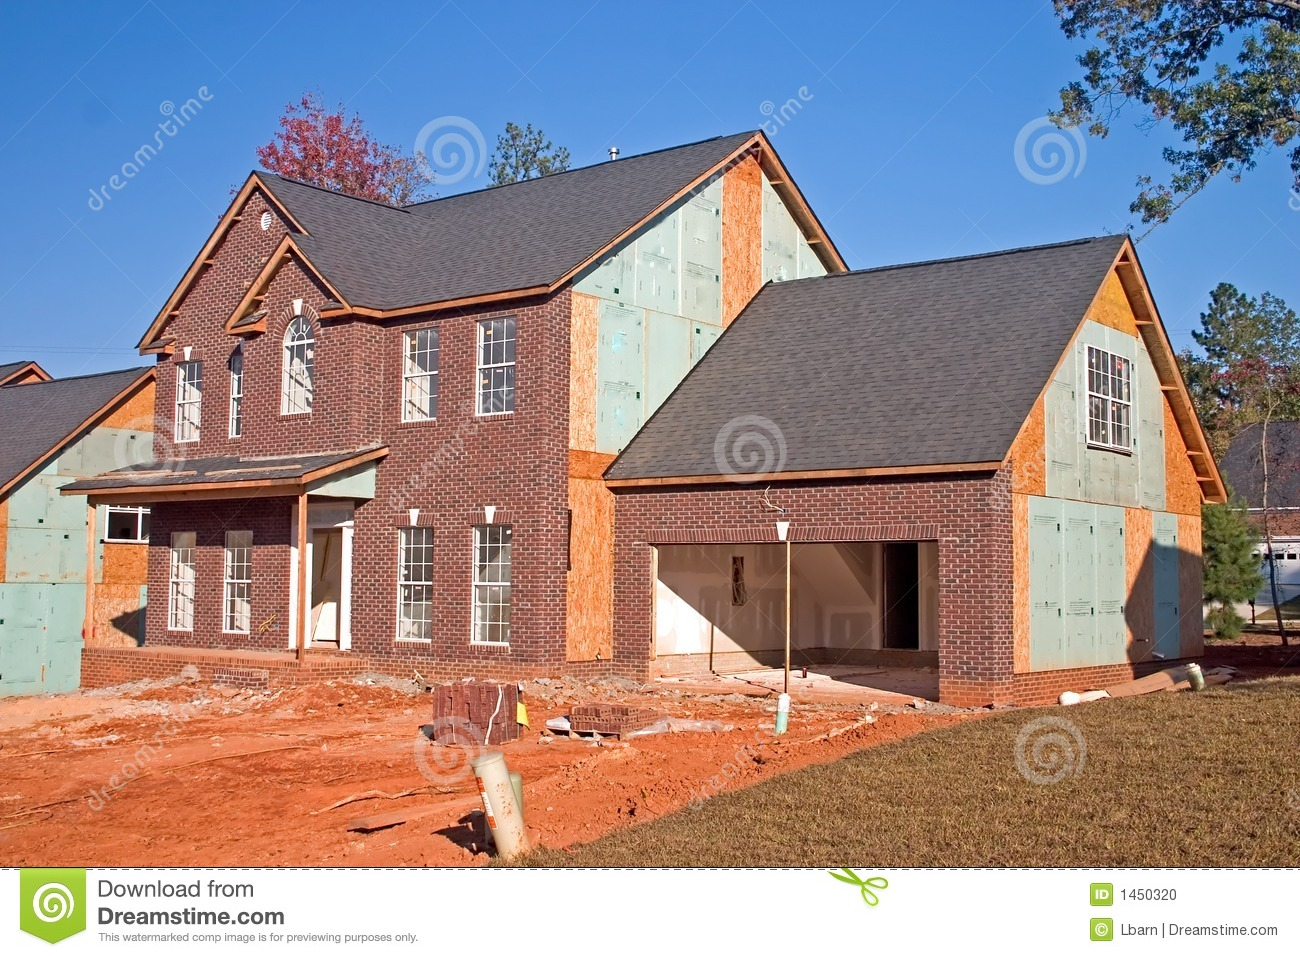 New Brick Front Home Stock Photo Image 1450320